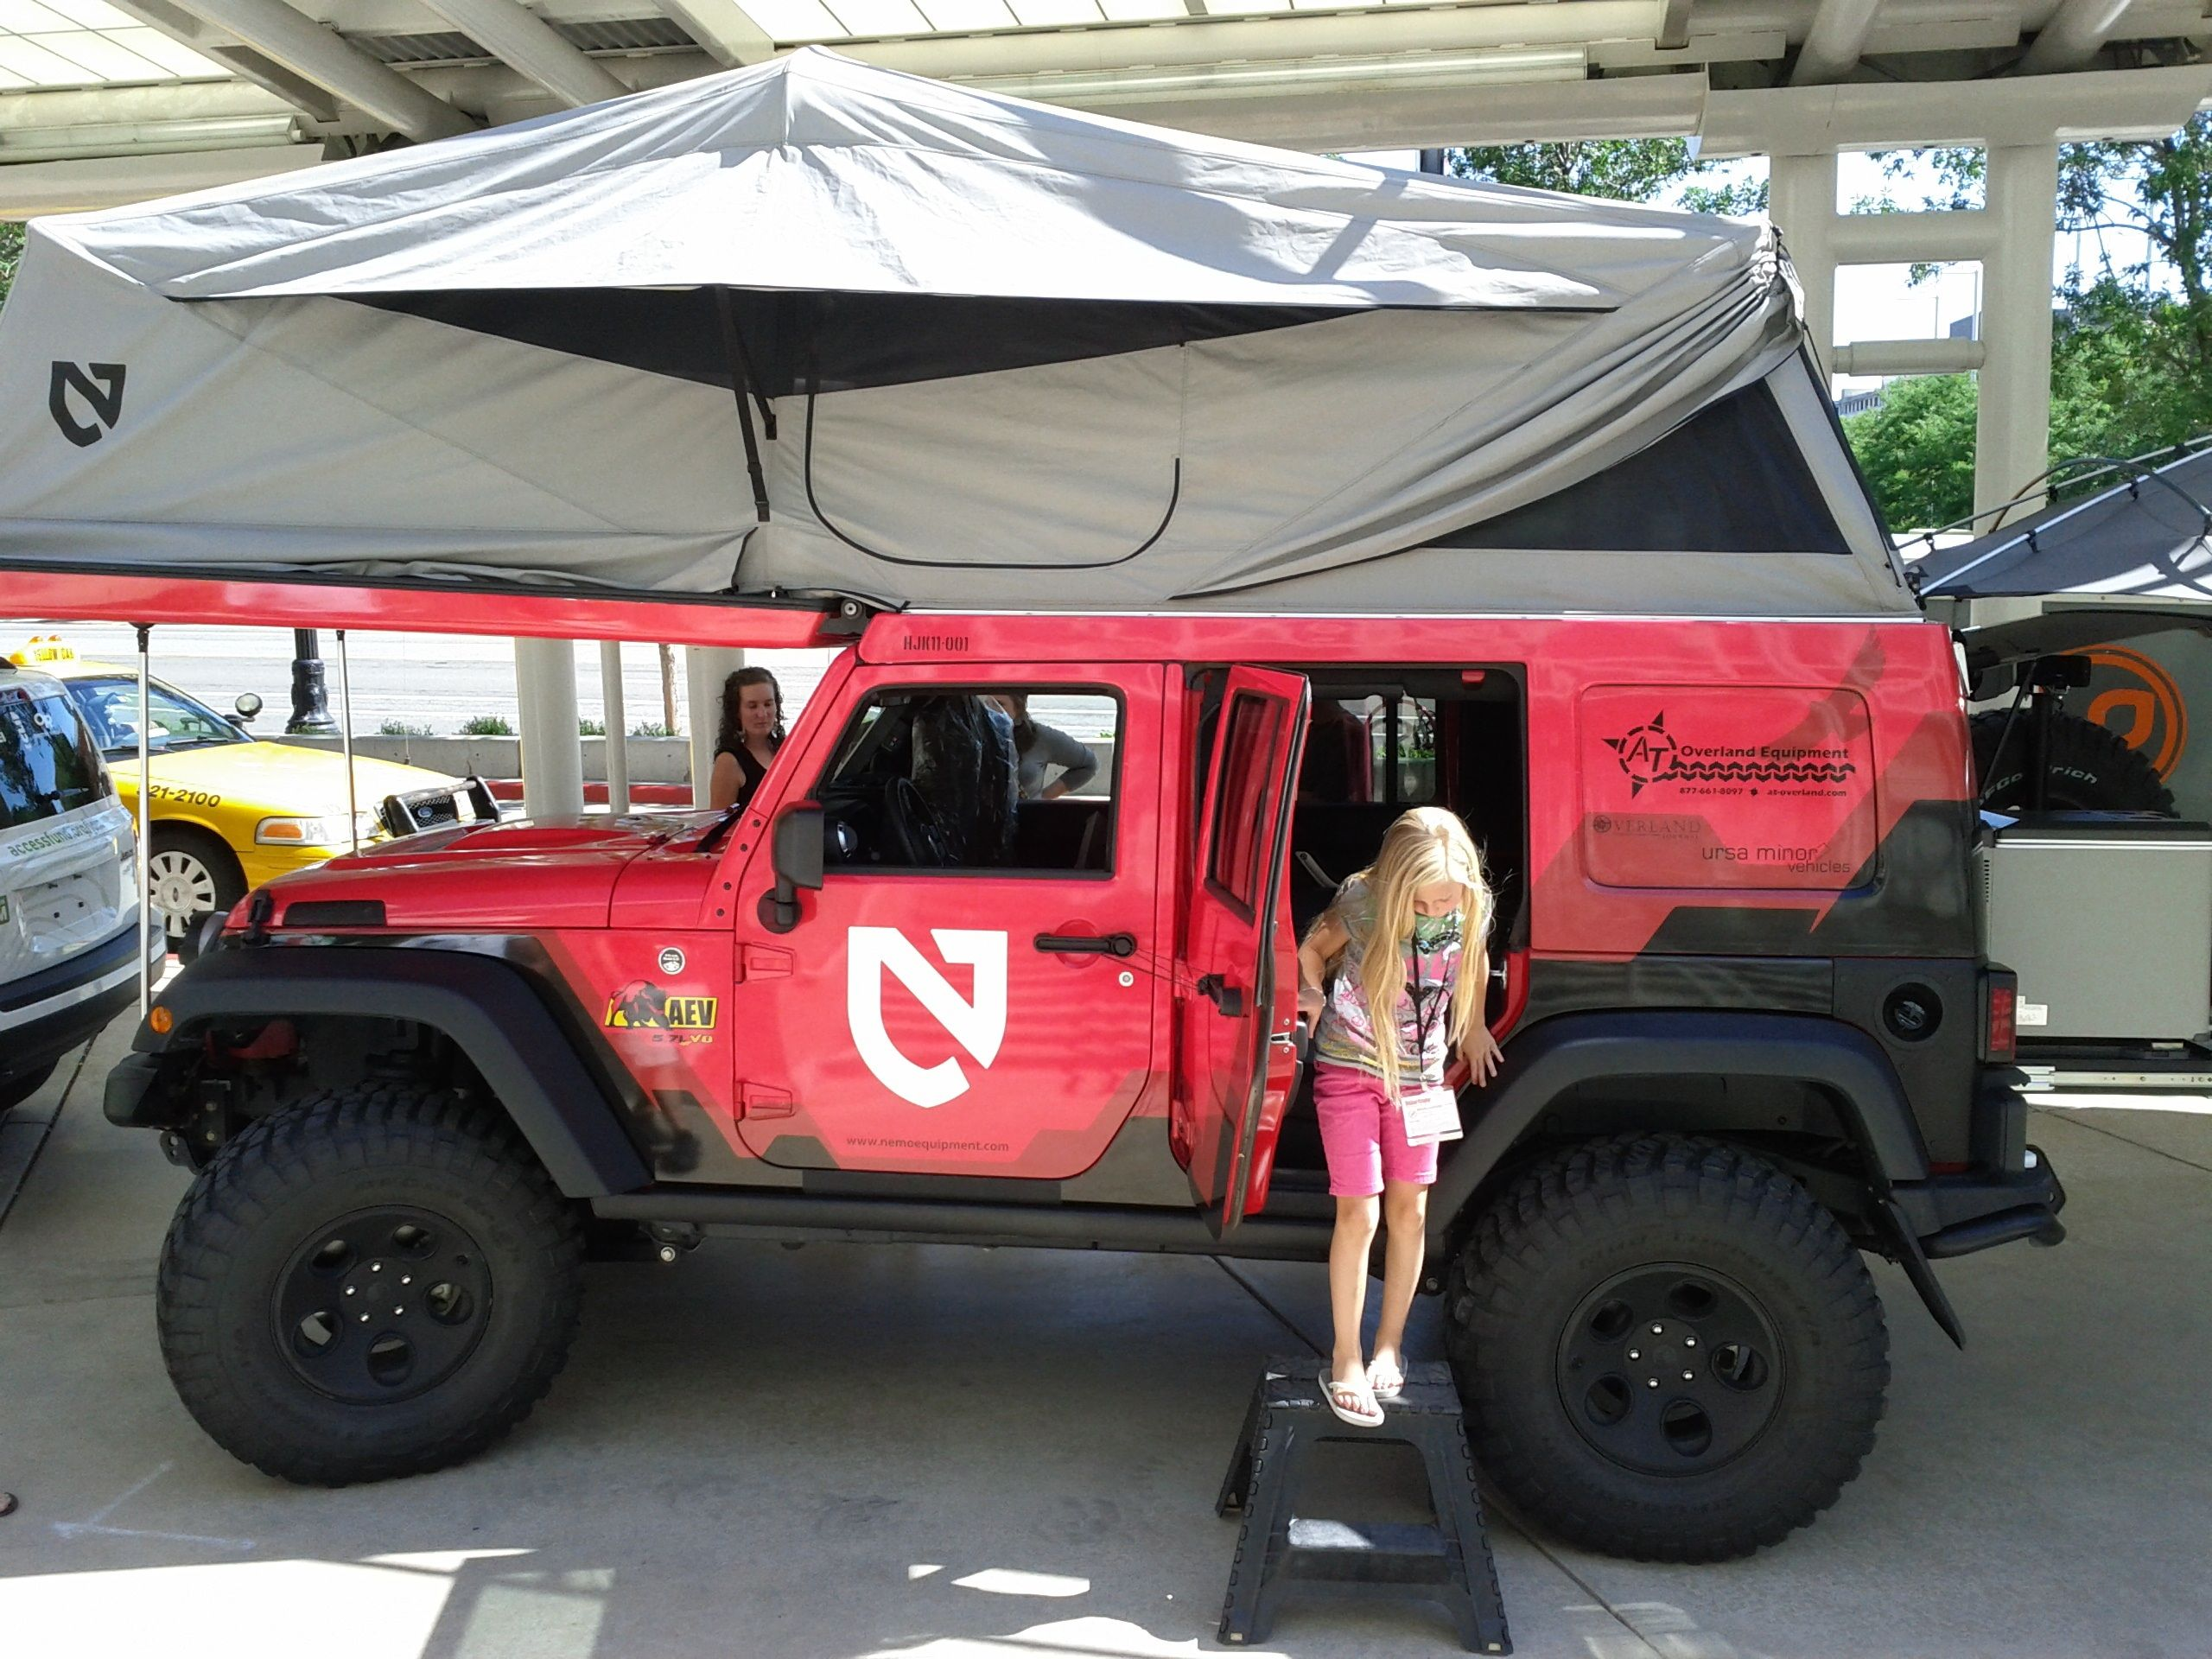 Top Tent for JKu0027s | Jeep & Top Tent for JKu0027s | Jeep | Summer Nights on the Lake ...